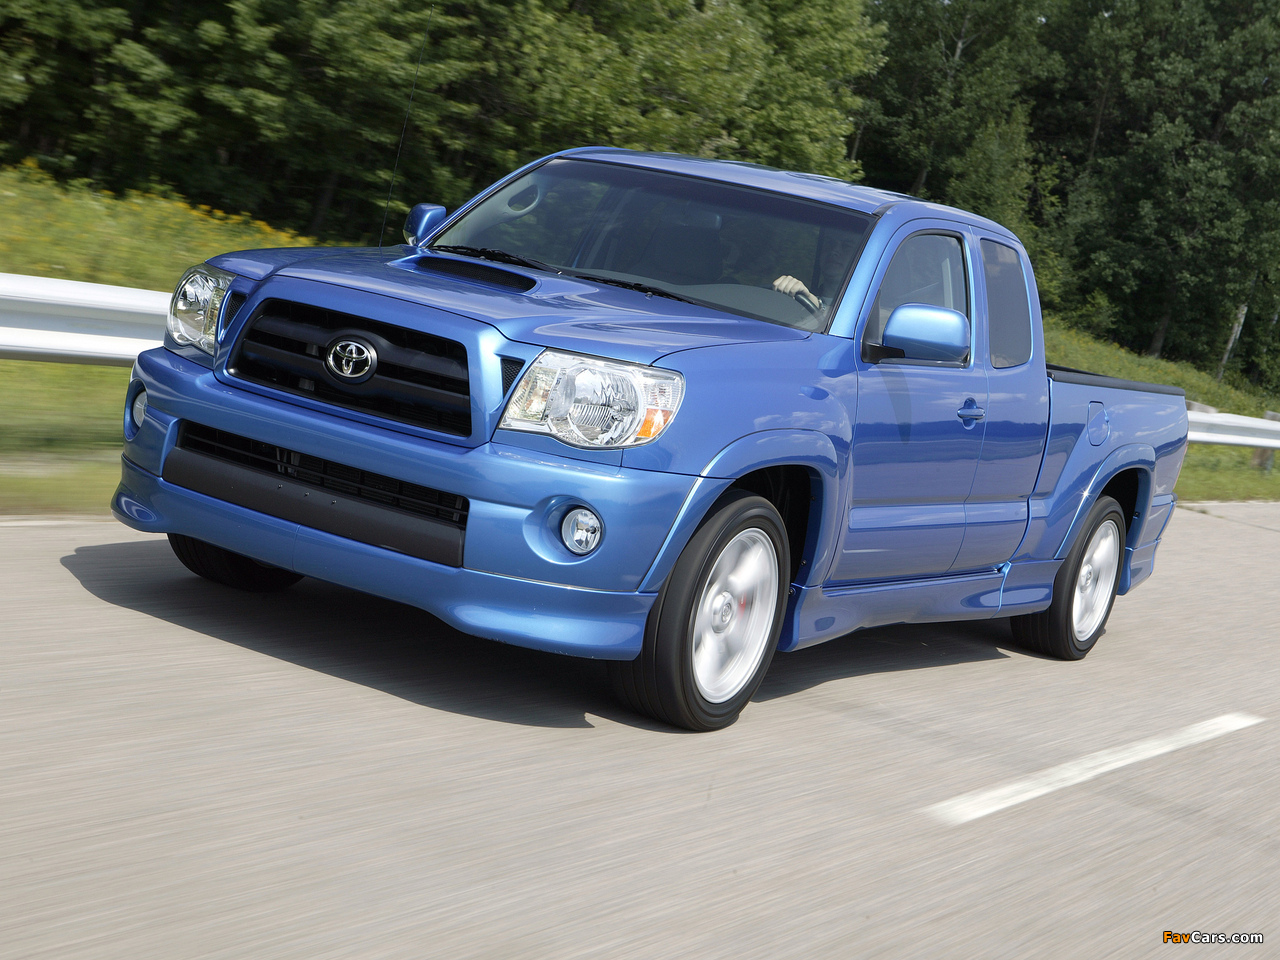 Images of Toyota Tacoma X-Runner Access Cab 2006–12 (1280x960)